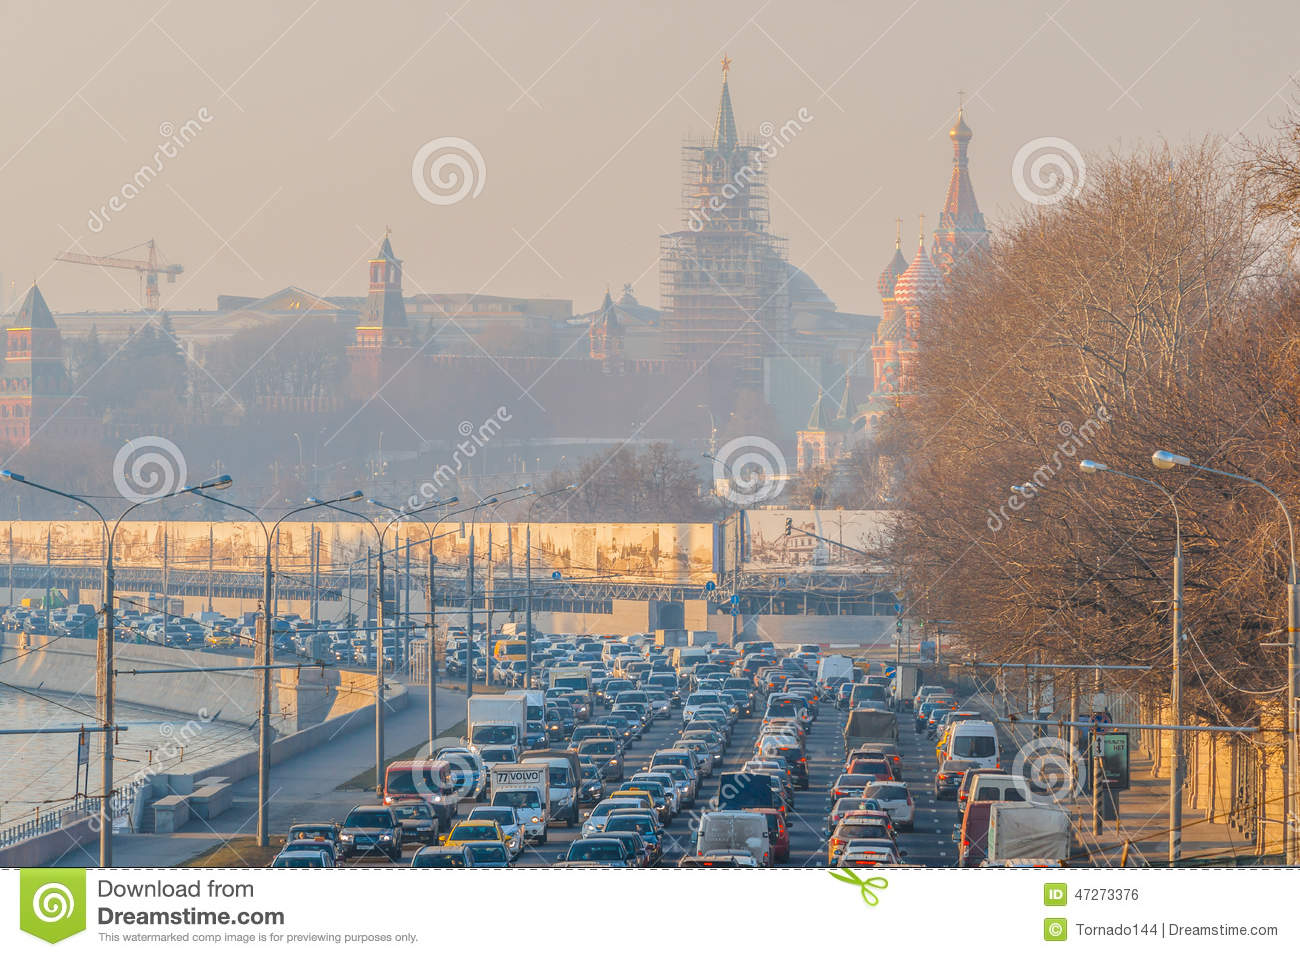 Smog in Moscow, Russia. Thursday, Nov. 20, 2014. Weather: Sun, s